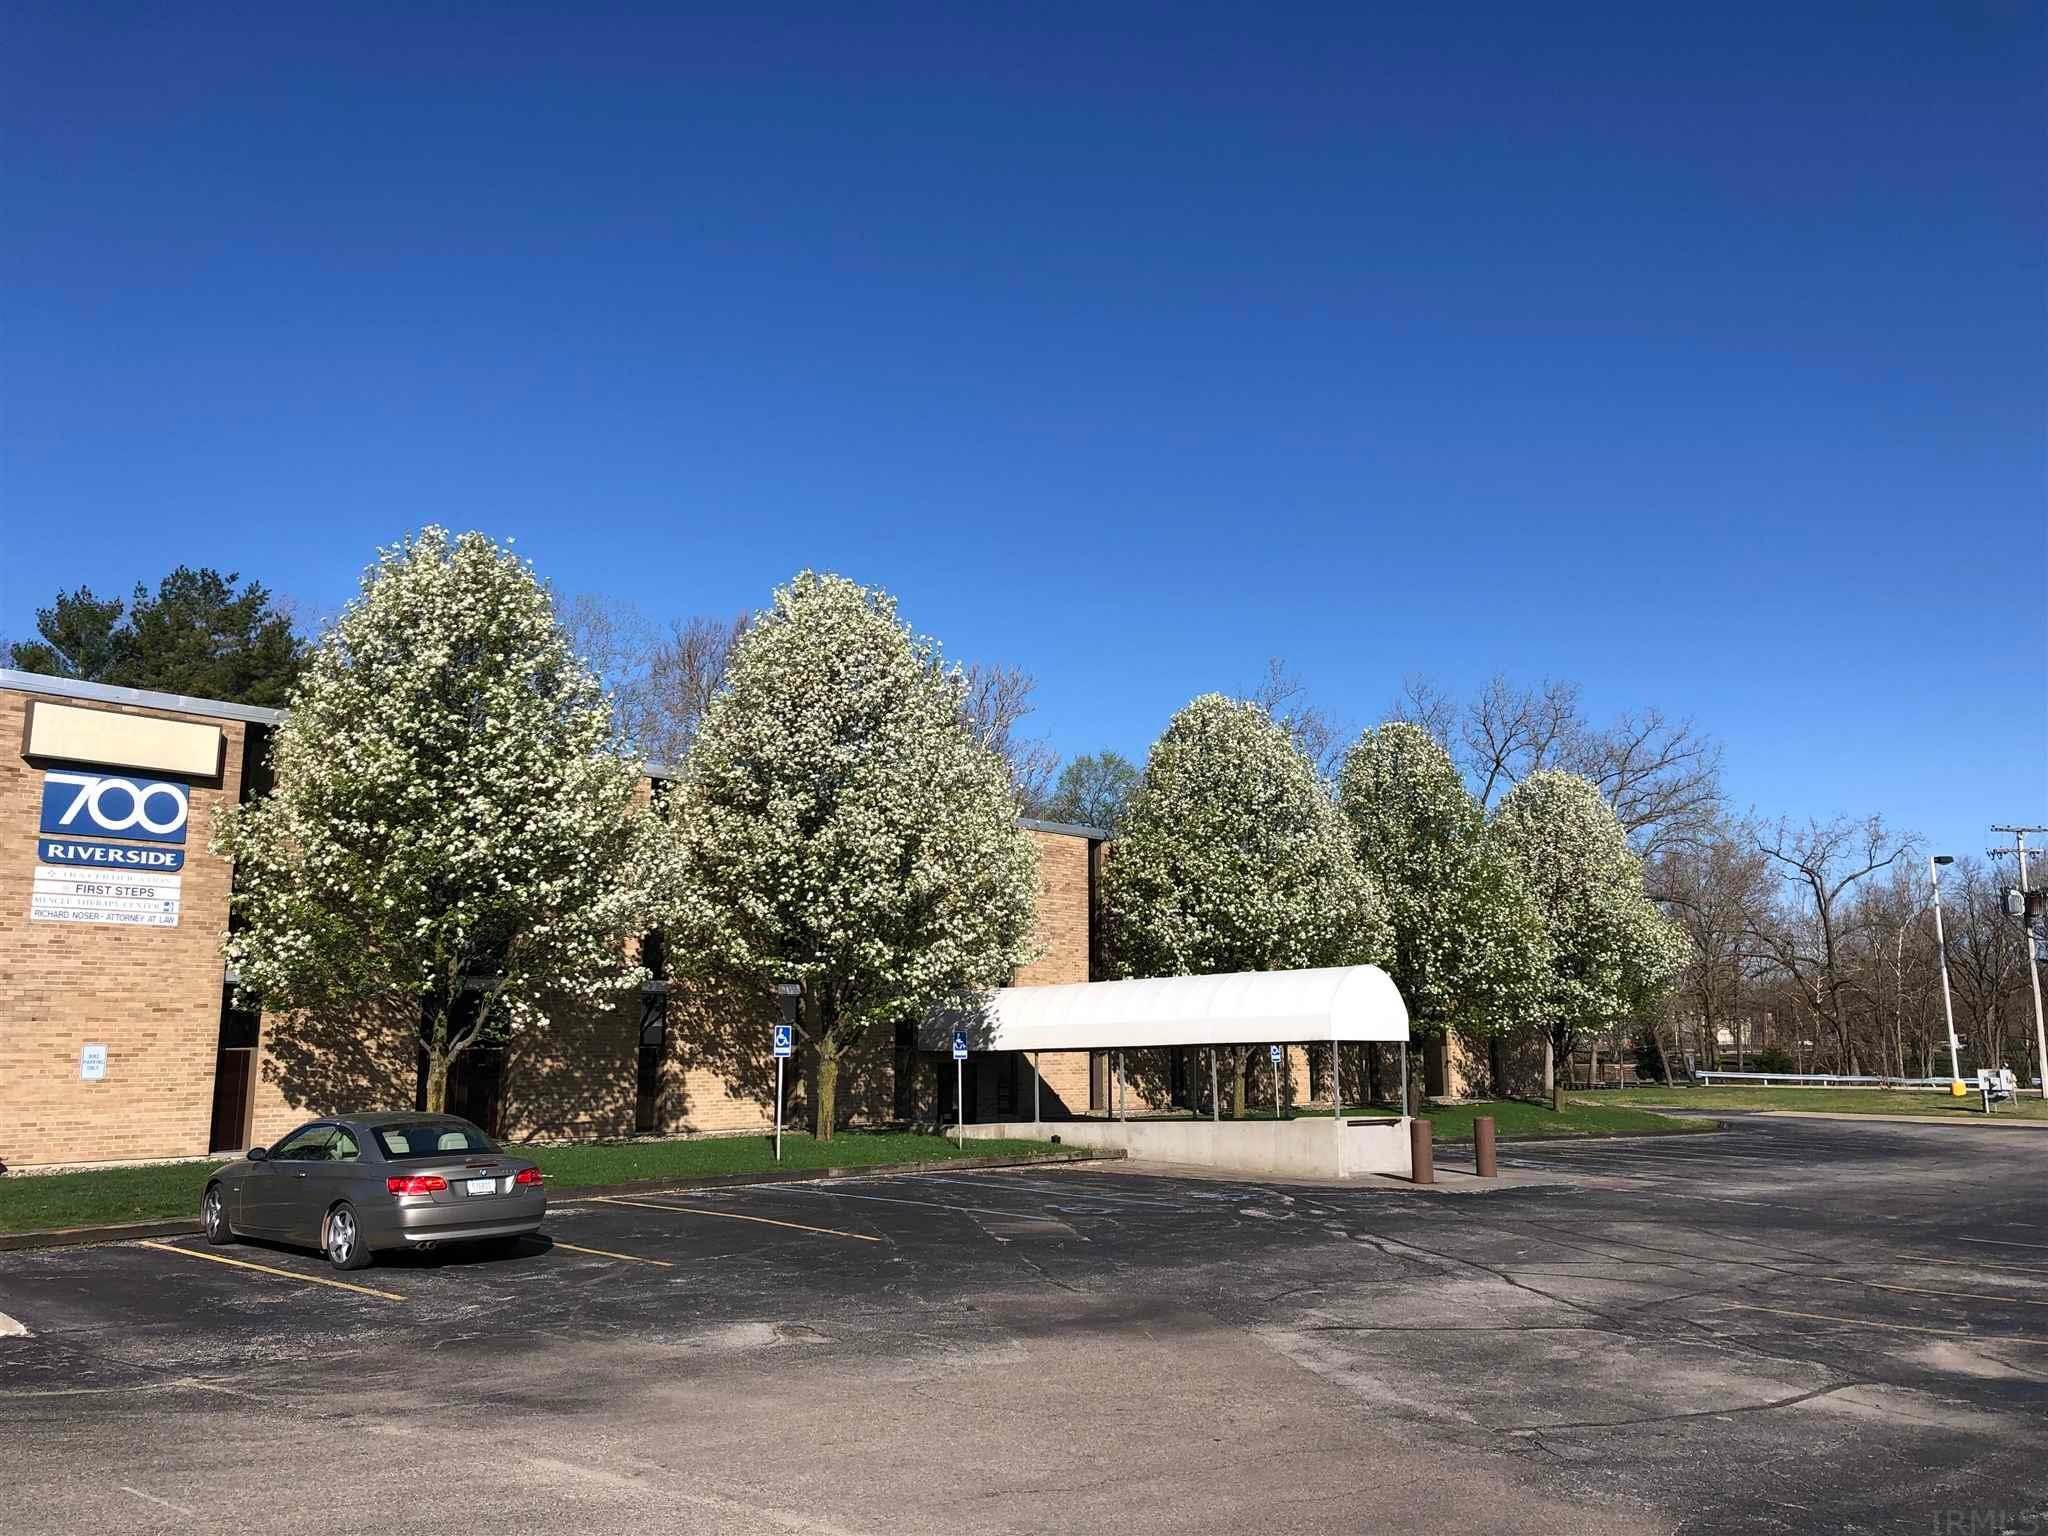 Comm / Ind Lease at 700 E Beardsley Avenue Elkhart, Indiana 46515 United States